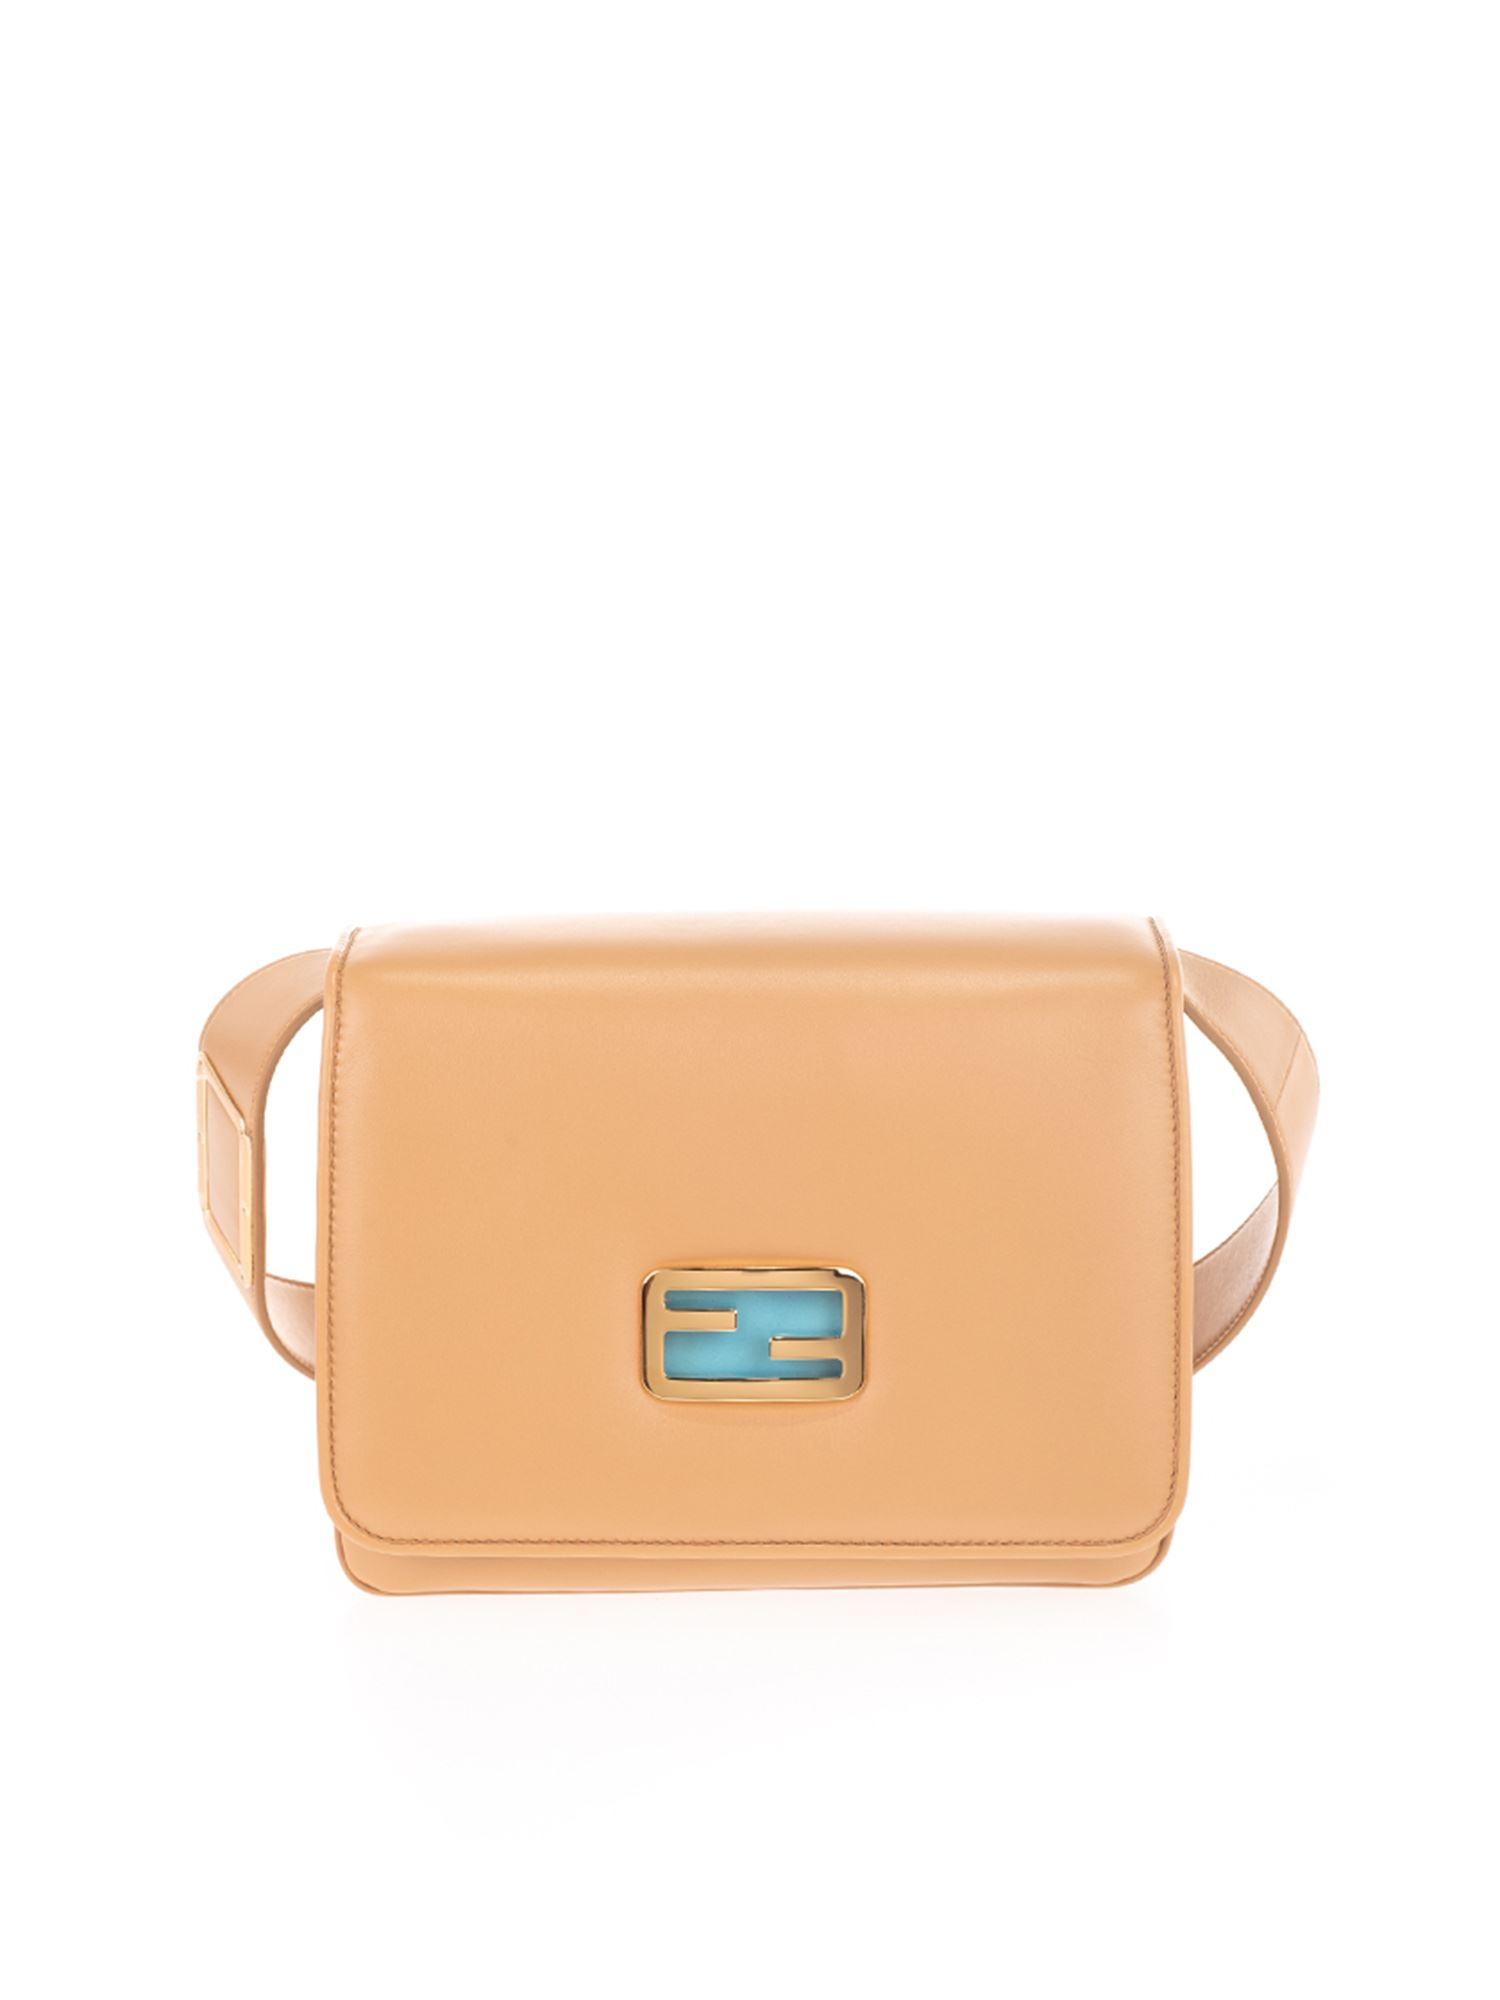 Fendi ID BAG IN BEIGE